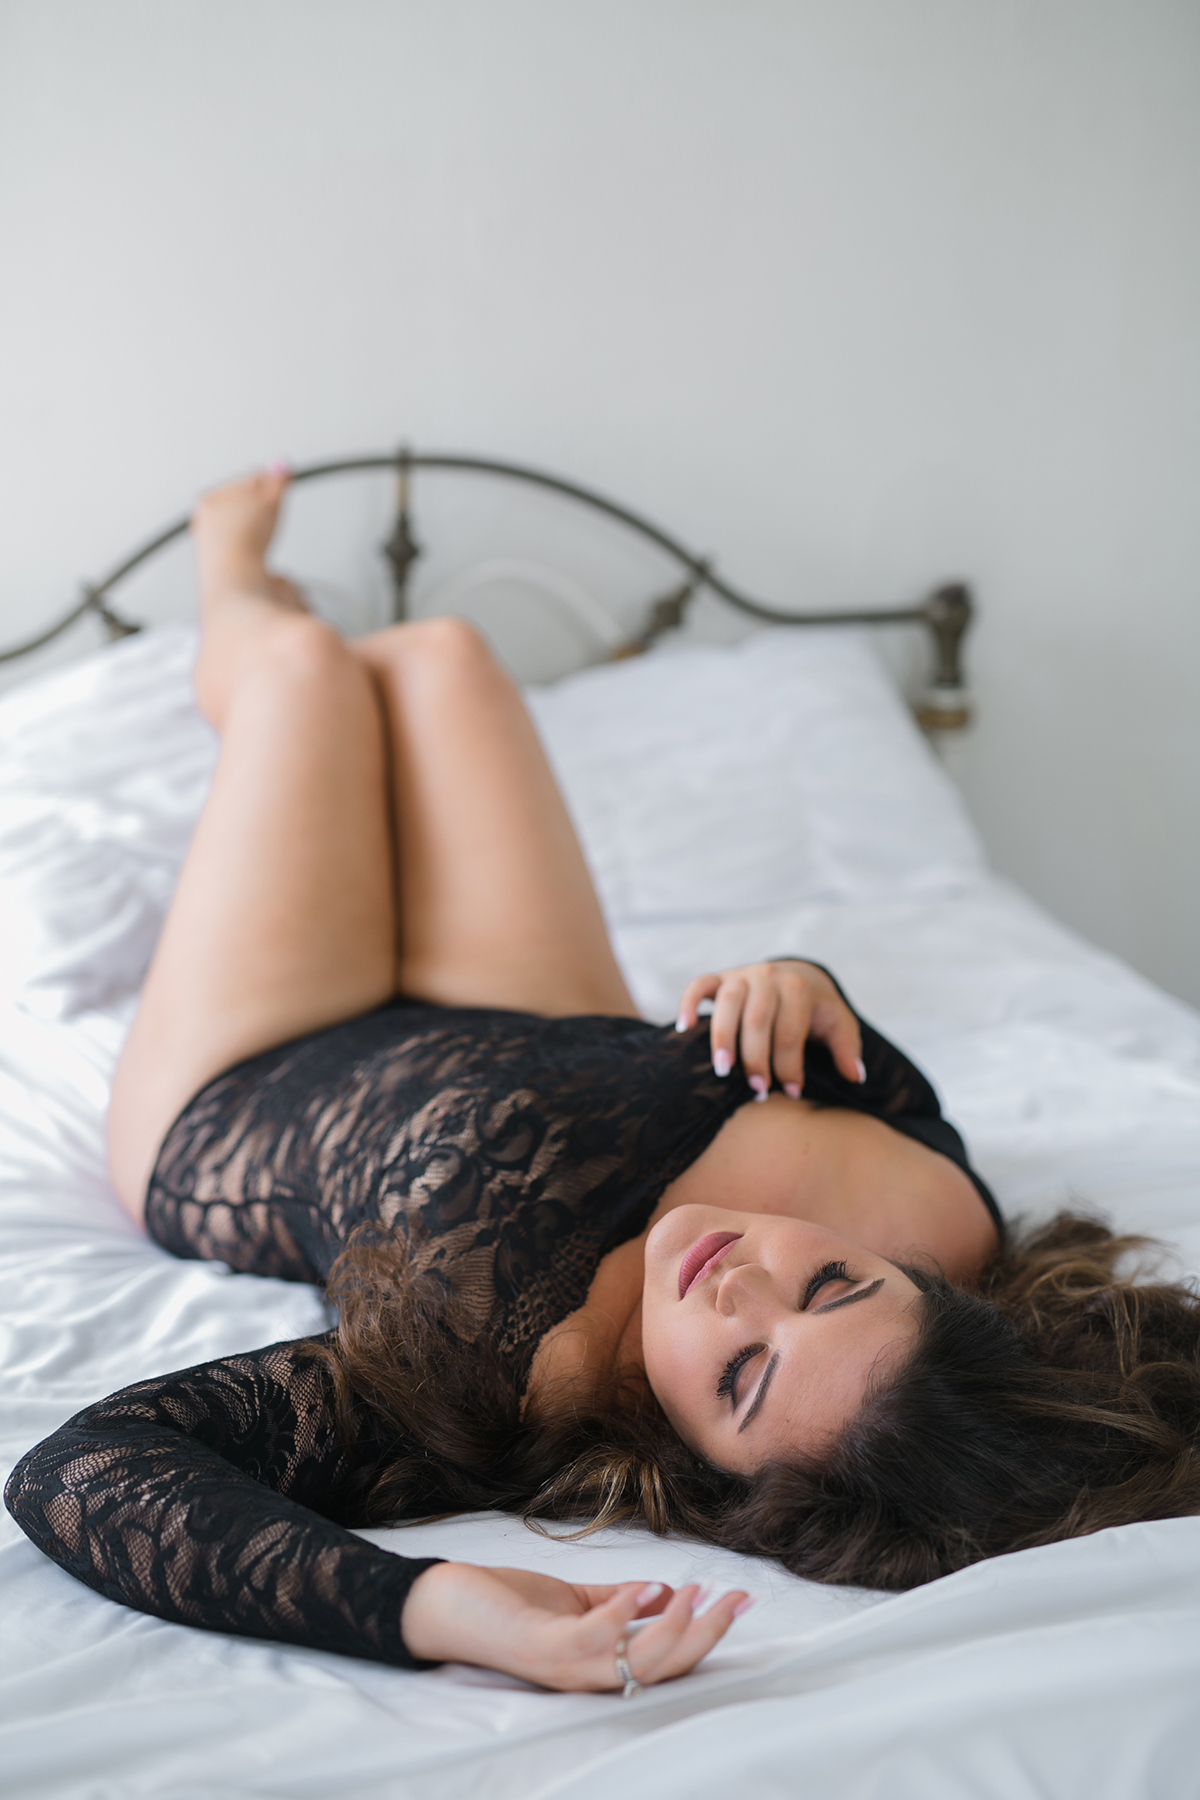 austin-tx-boudoir-photographer-photography-kimberly-brooke-22.jpg